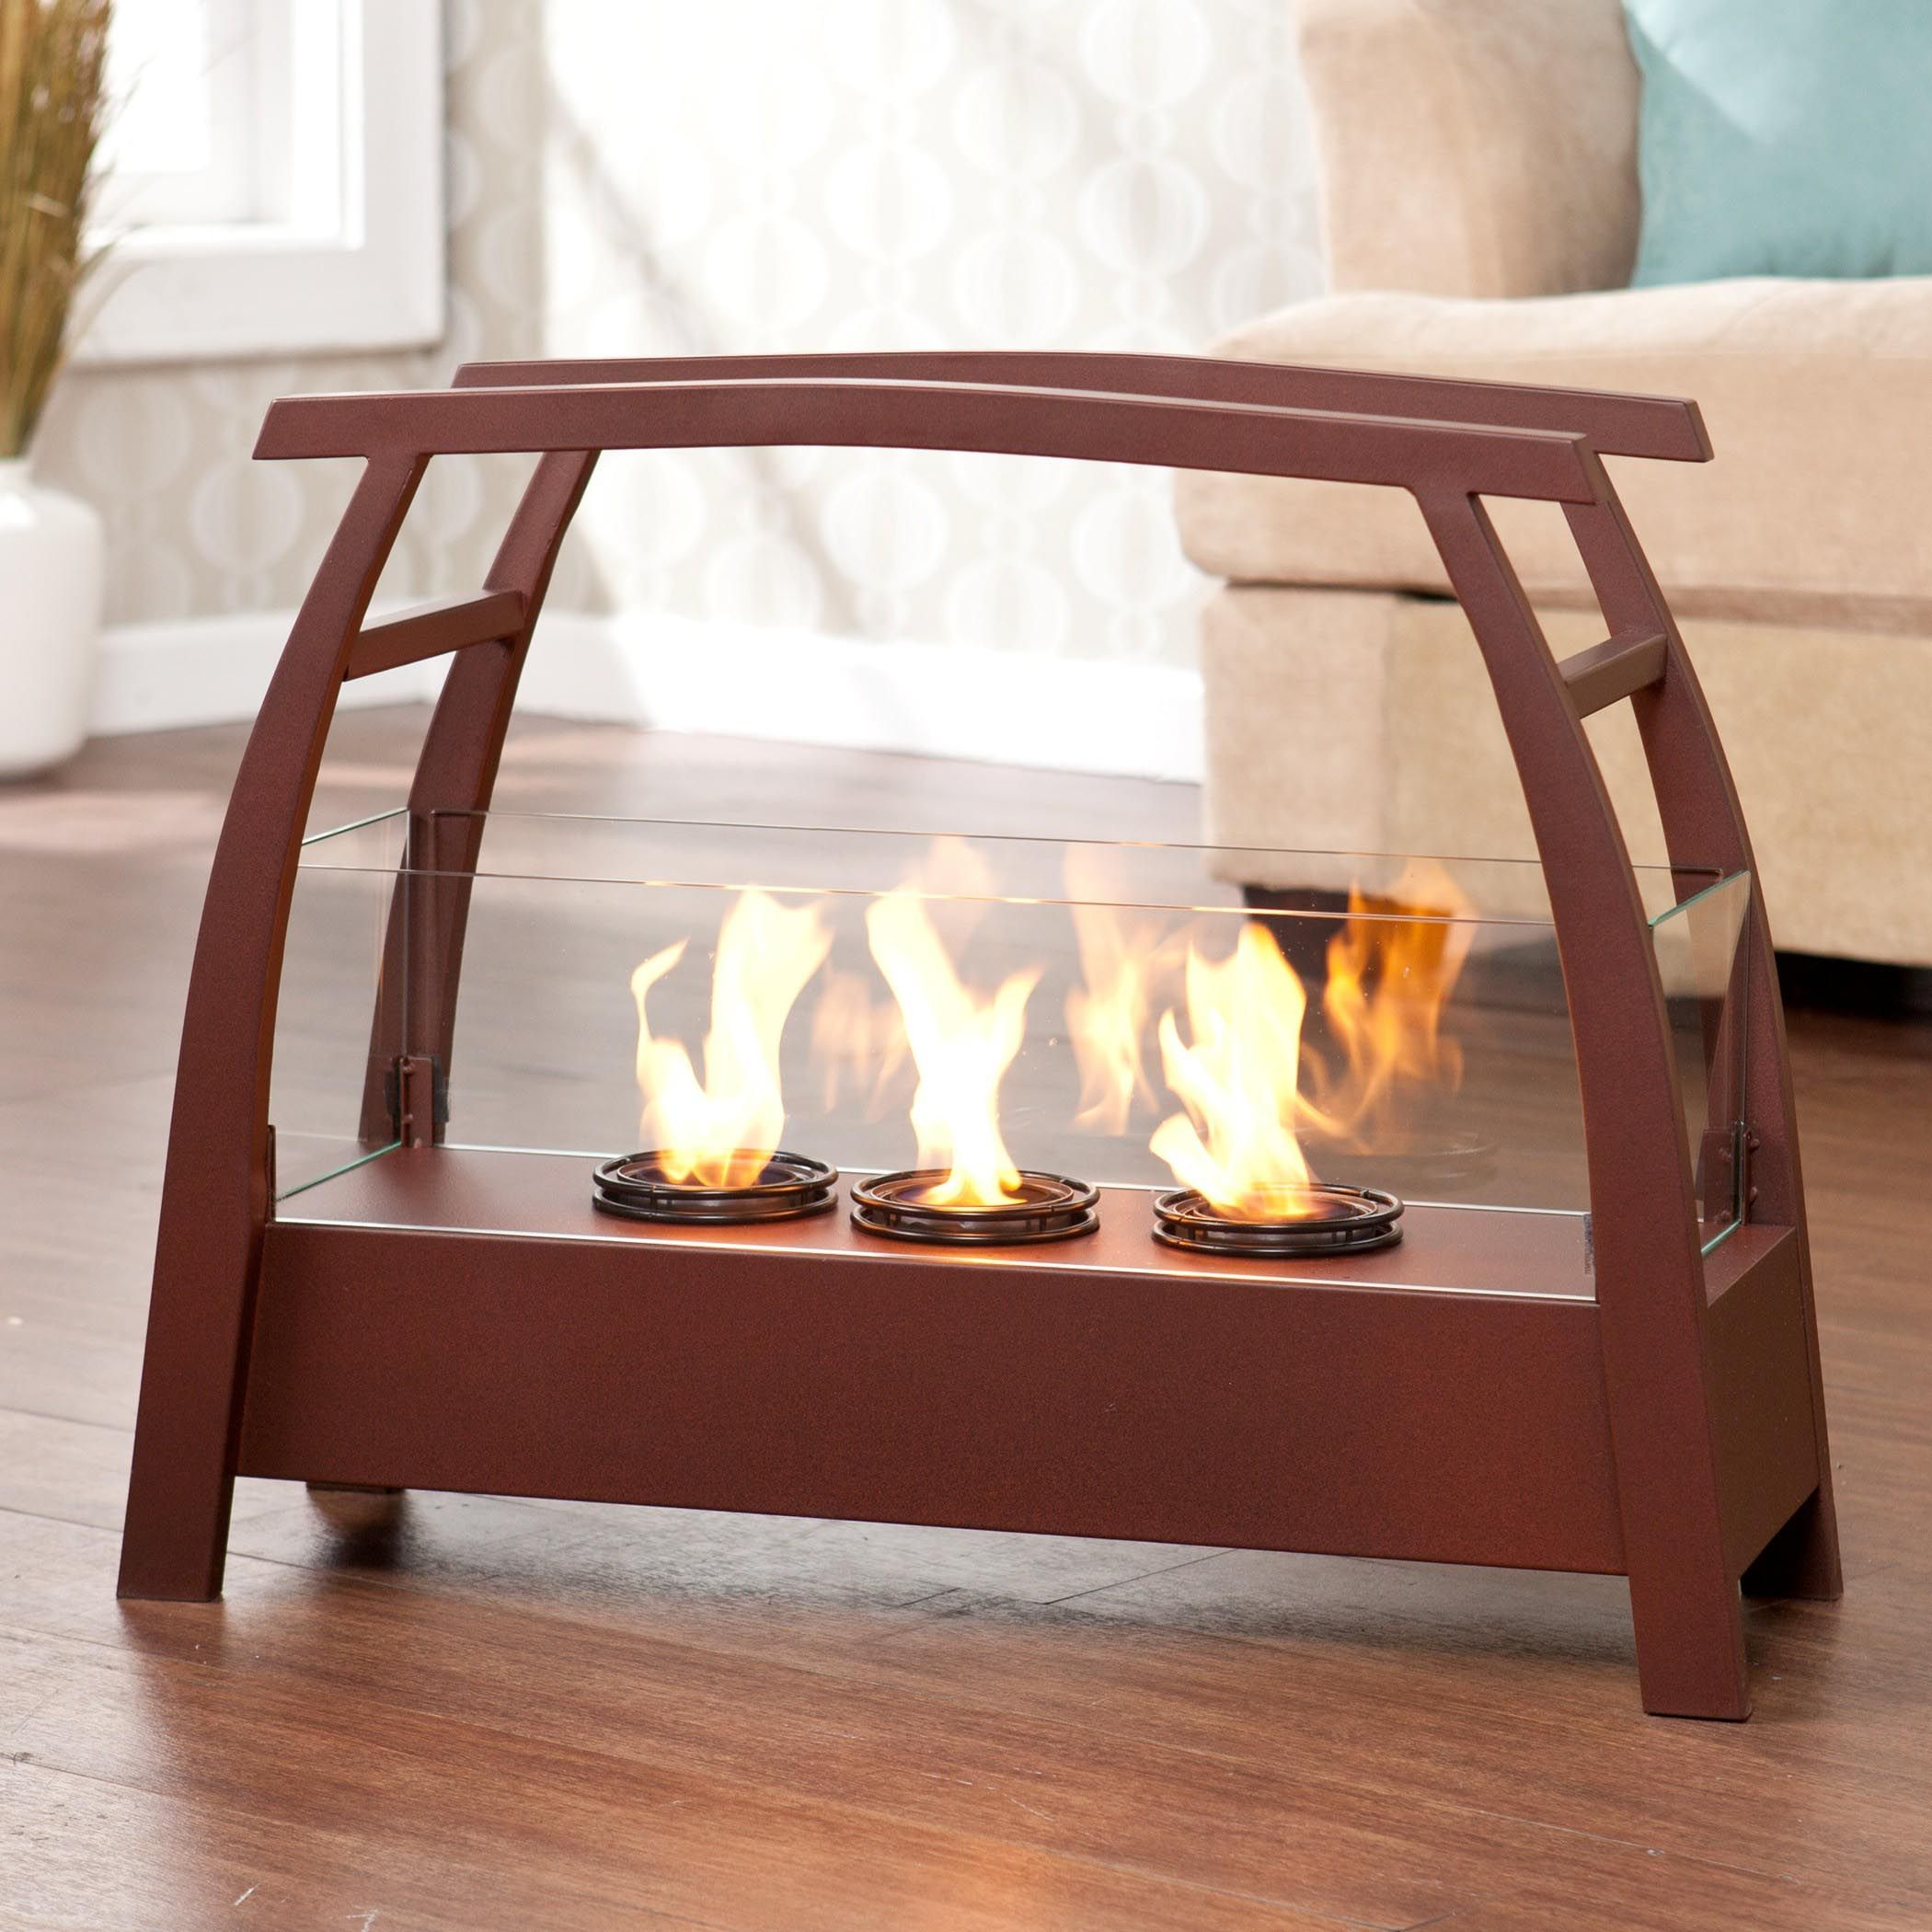 Diy indoor fire pit fire pit pinterest fire pit decor and craft diy indoor fire pit geotapseo Image collections